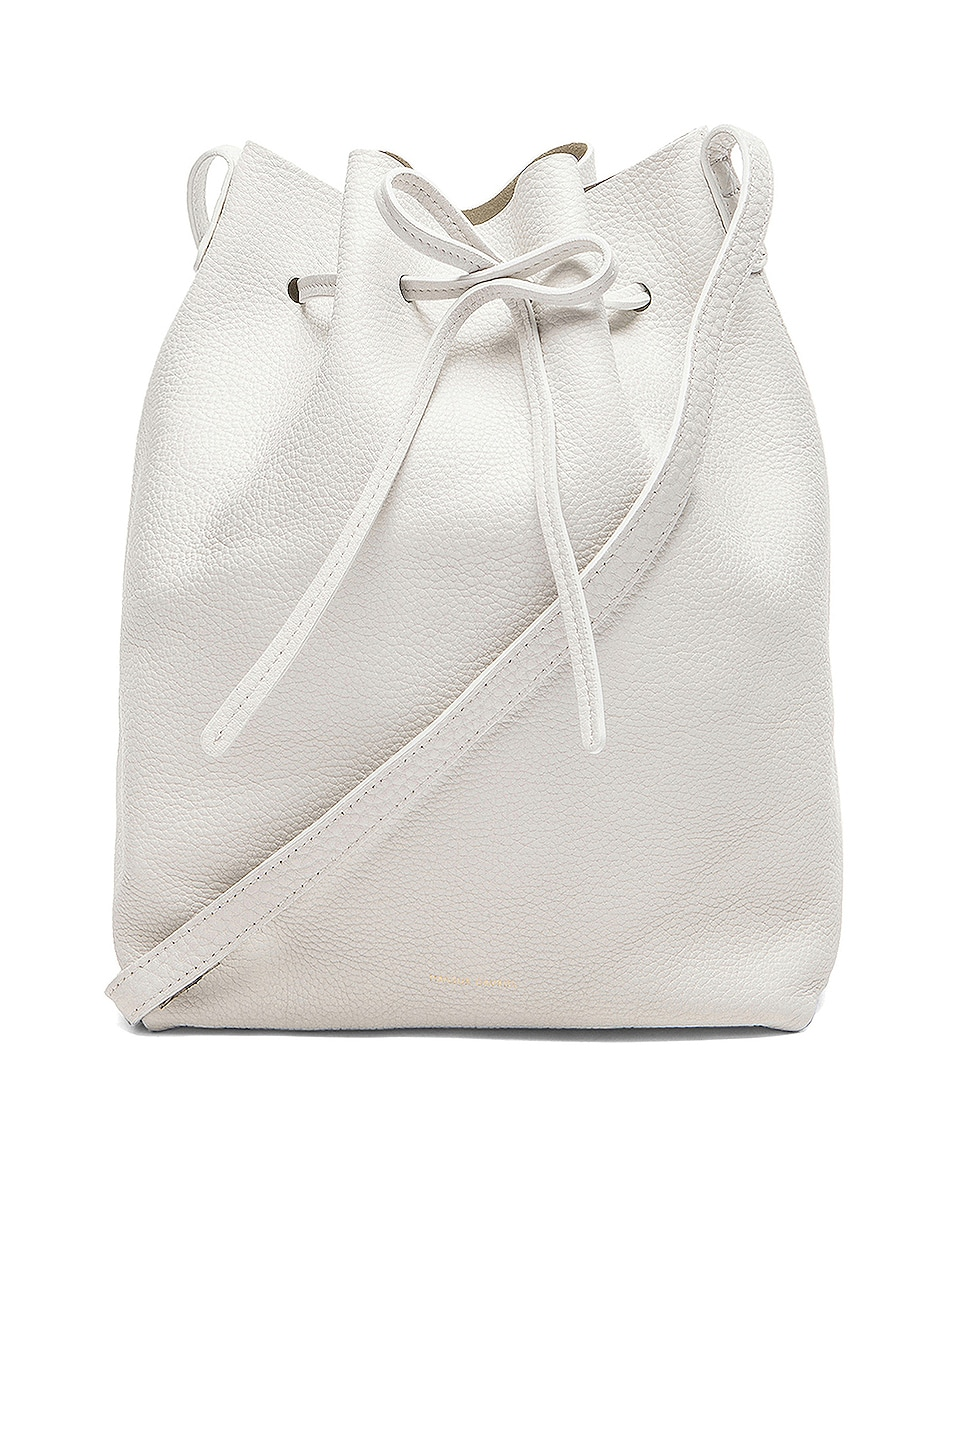 Image 1 of Mansur Gavriel Tumble Large Bucket Bag in White